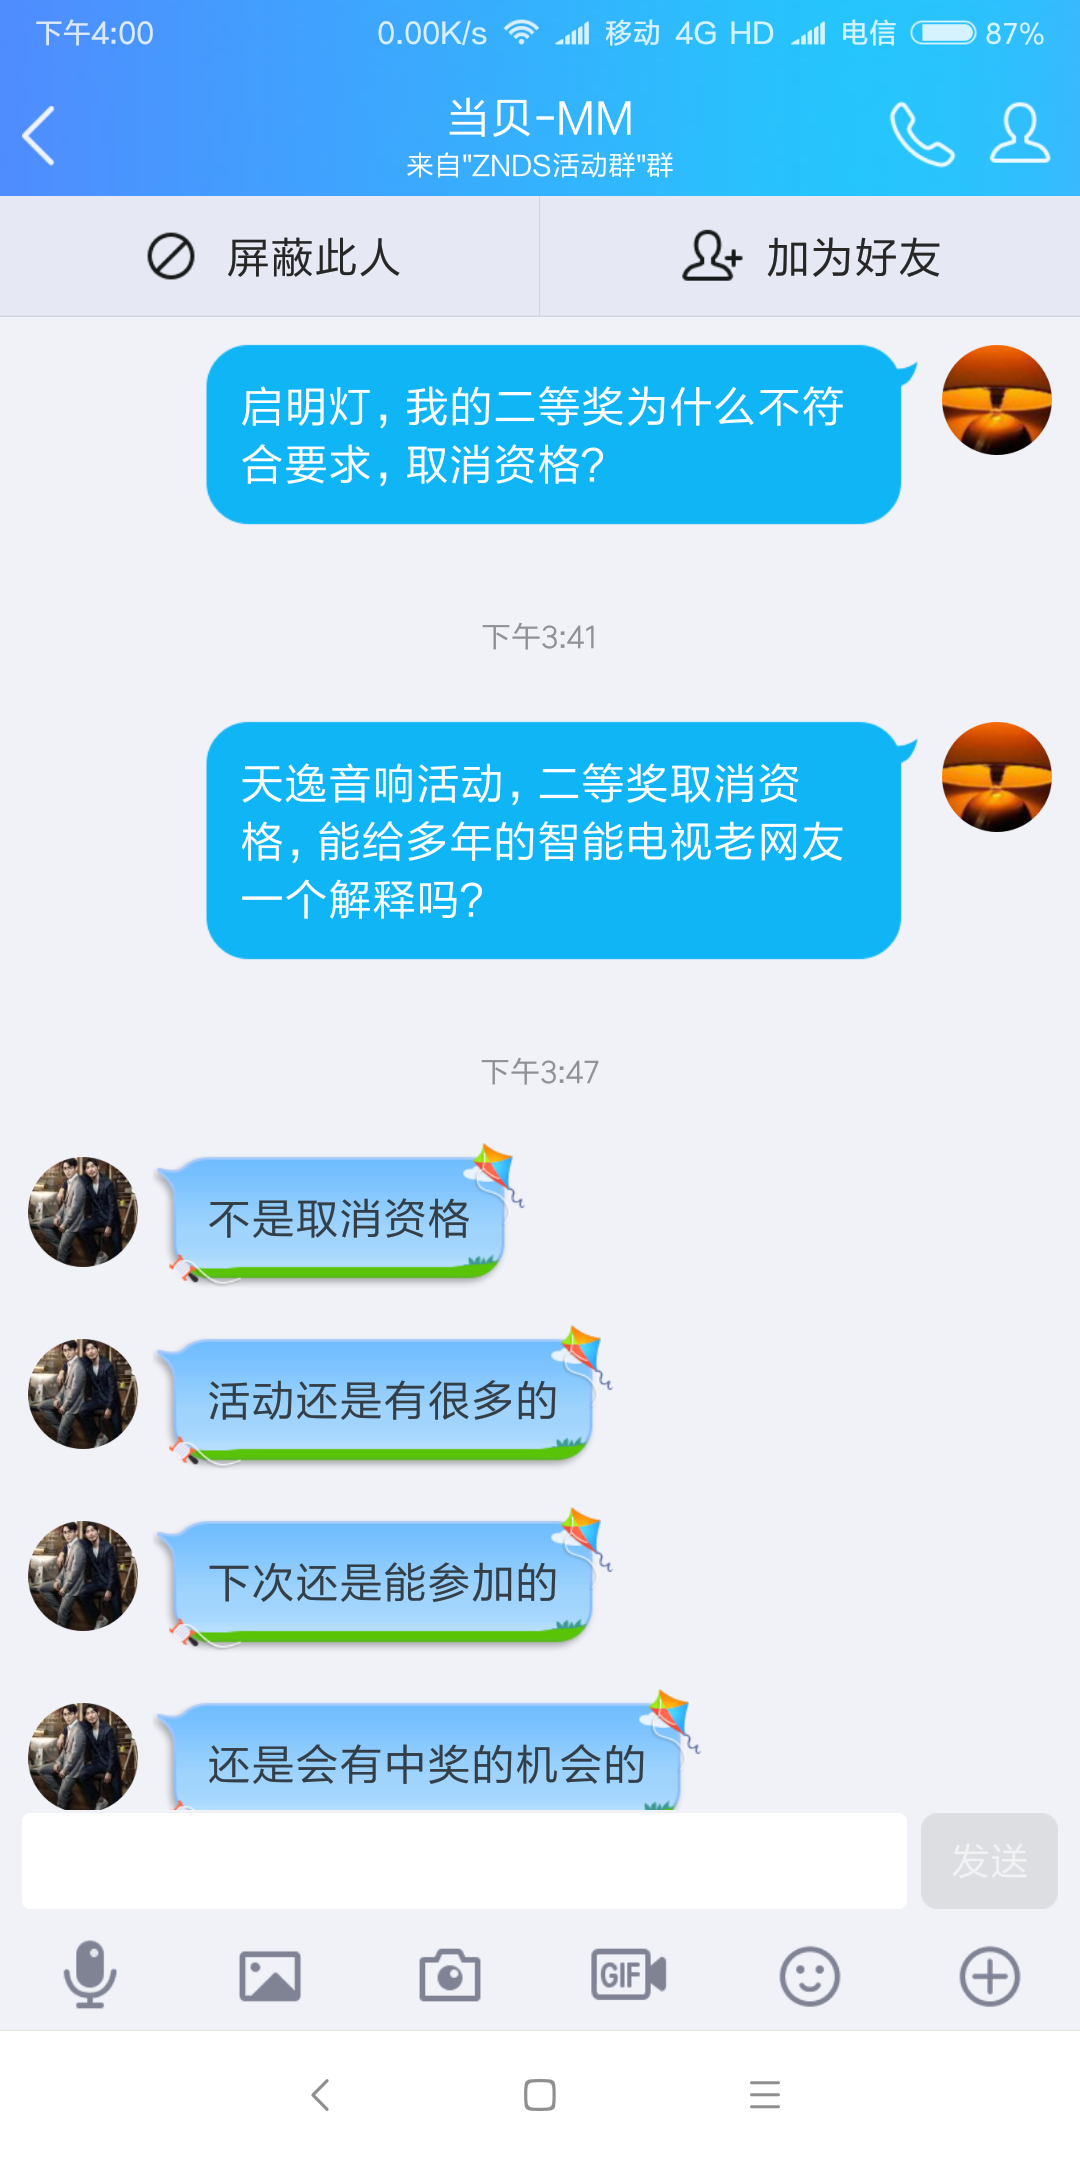 Screenshot_2018-07-17-16-00-08-239_com.tencent.mo.png